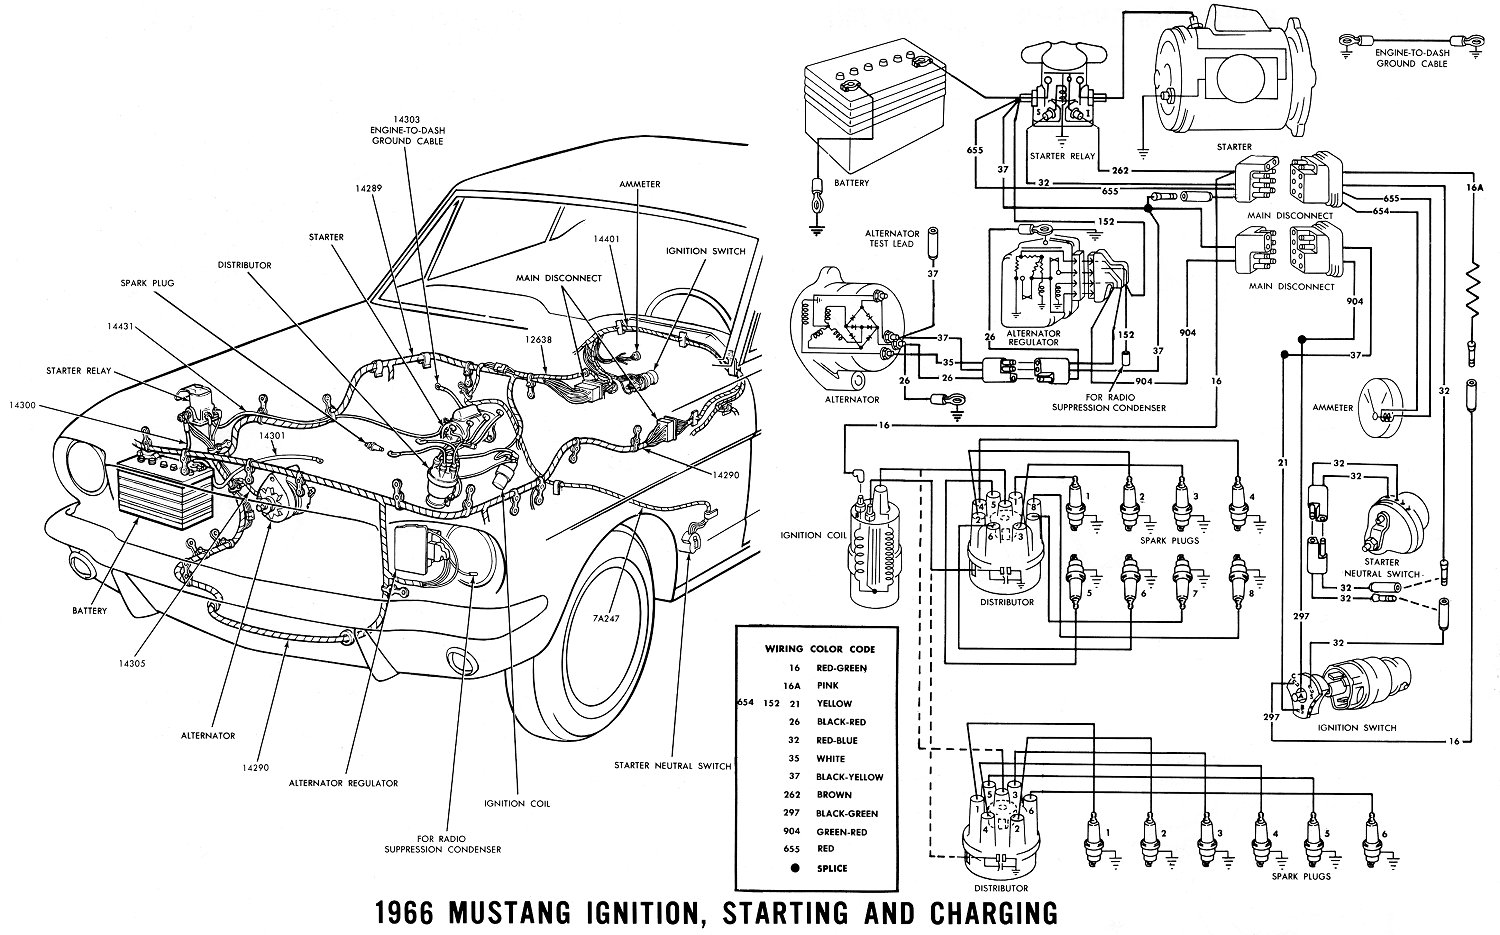 hight resolution of 302 ford engine diagram wiring diagram for you fire order ford 302 engine diagram ford 302 engine diagram